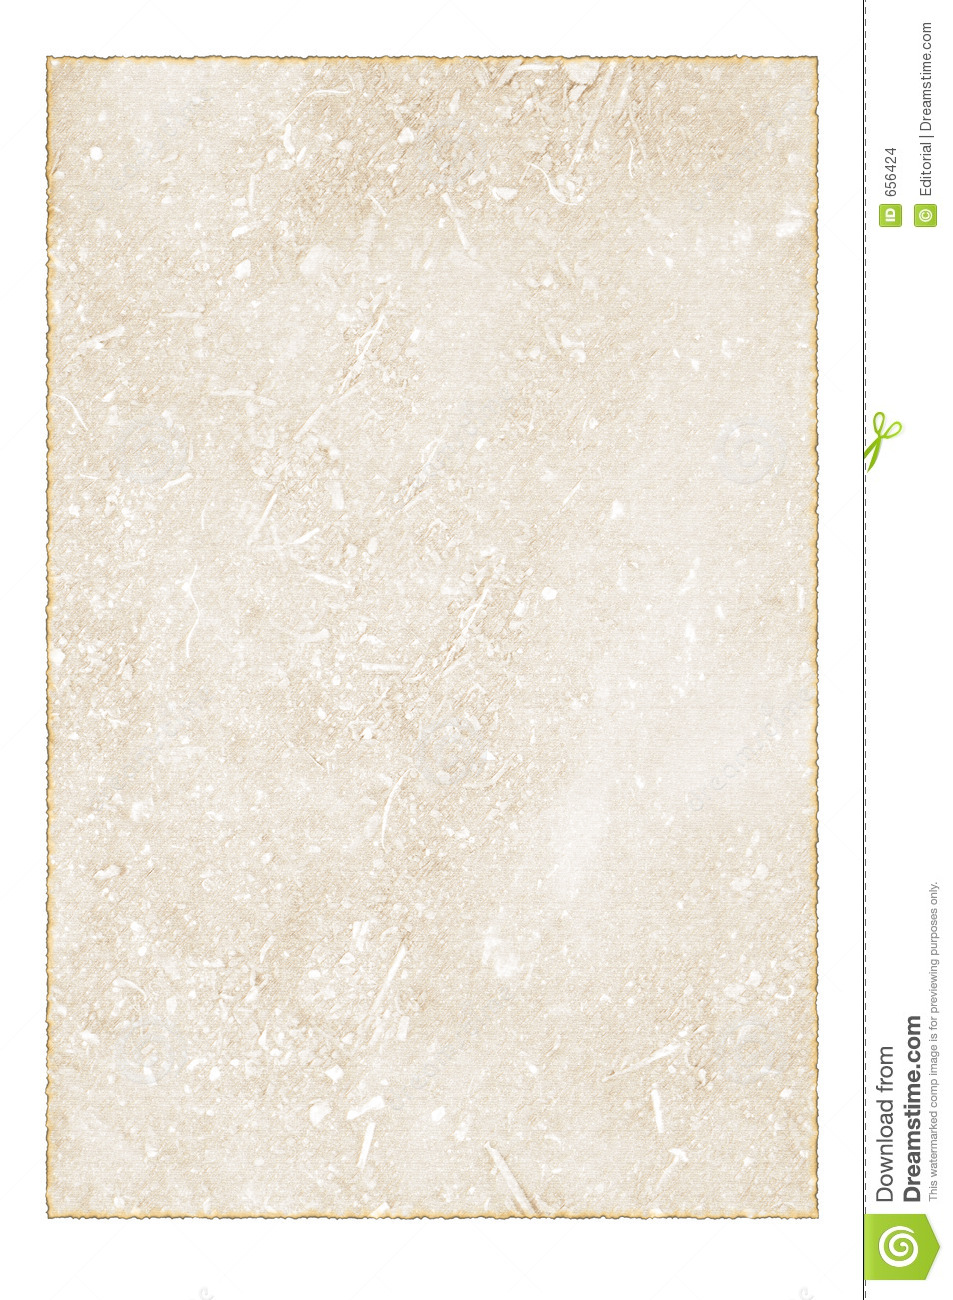 Japanese Rice Paper Stock Photo Image Of Paper